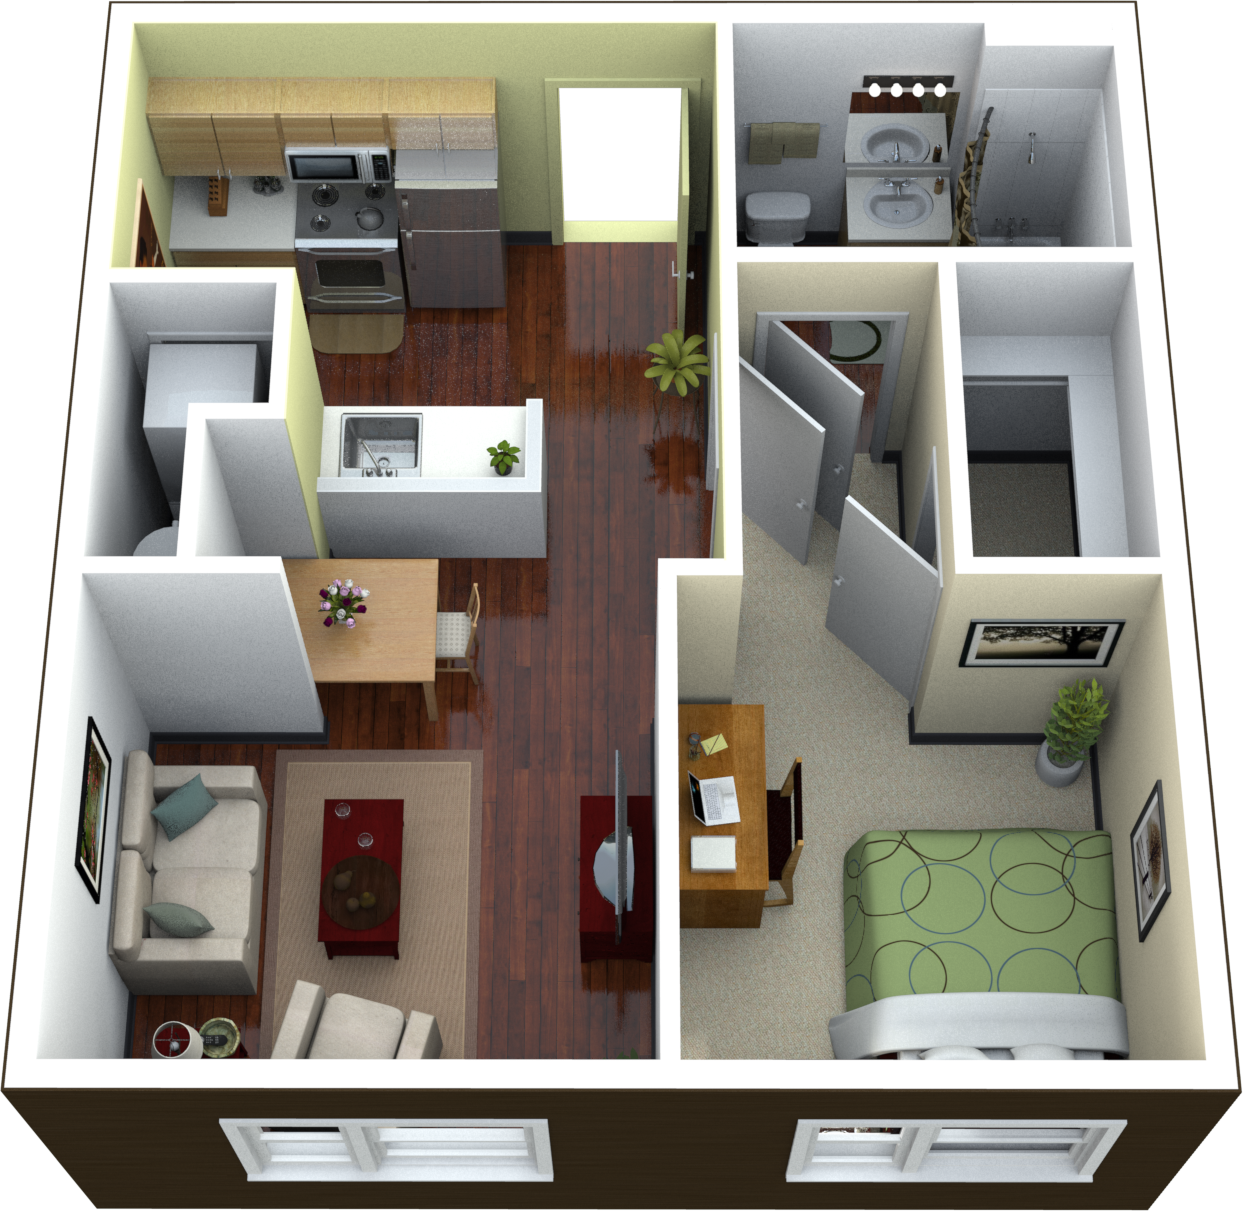 1 bedroom floor plans for apartment design ideas 2017